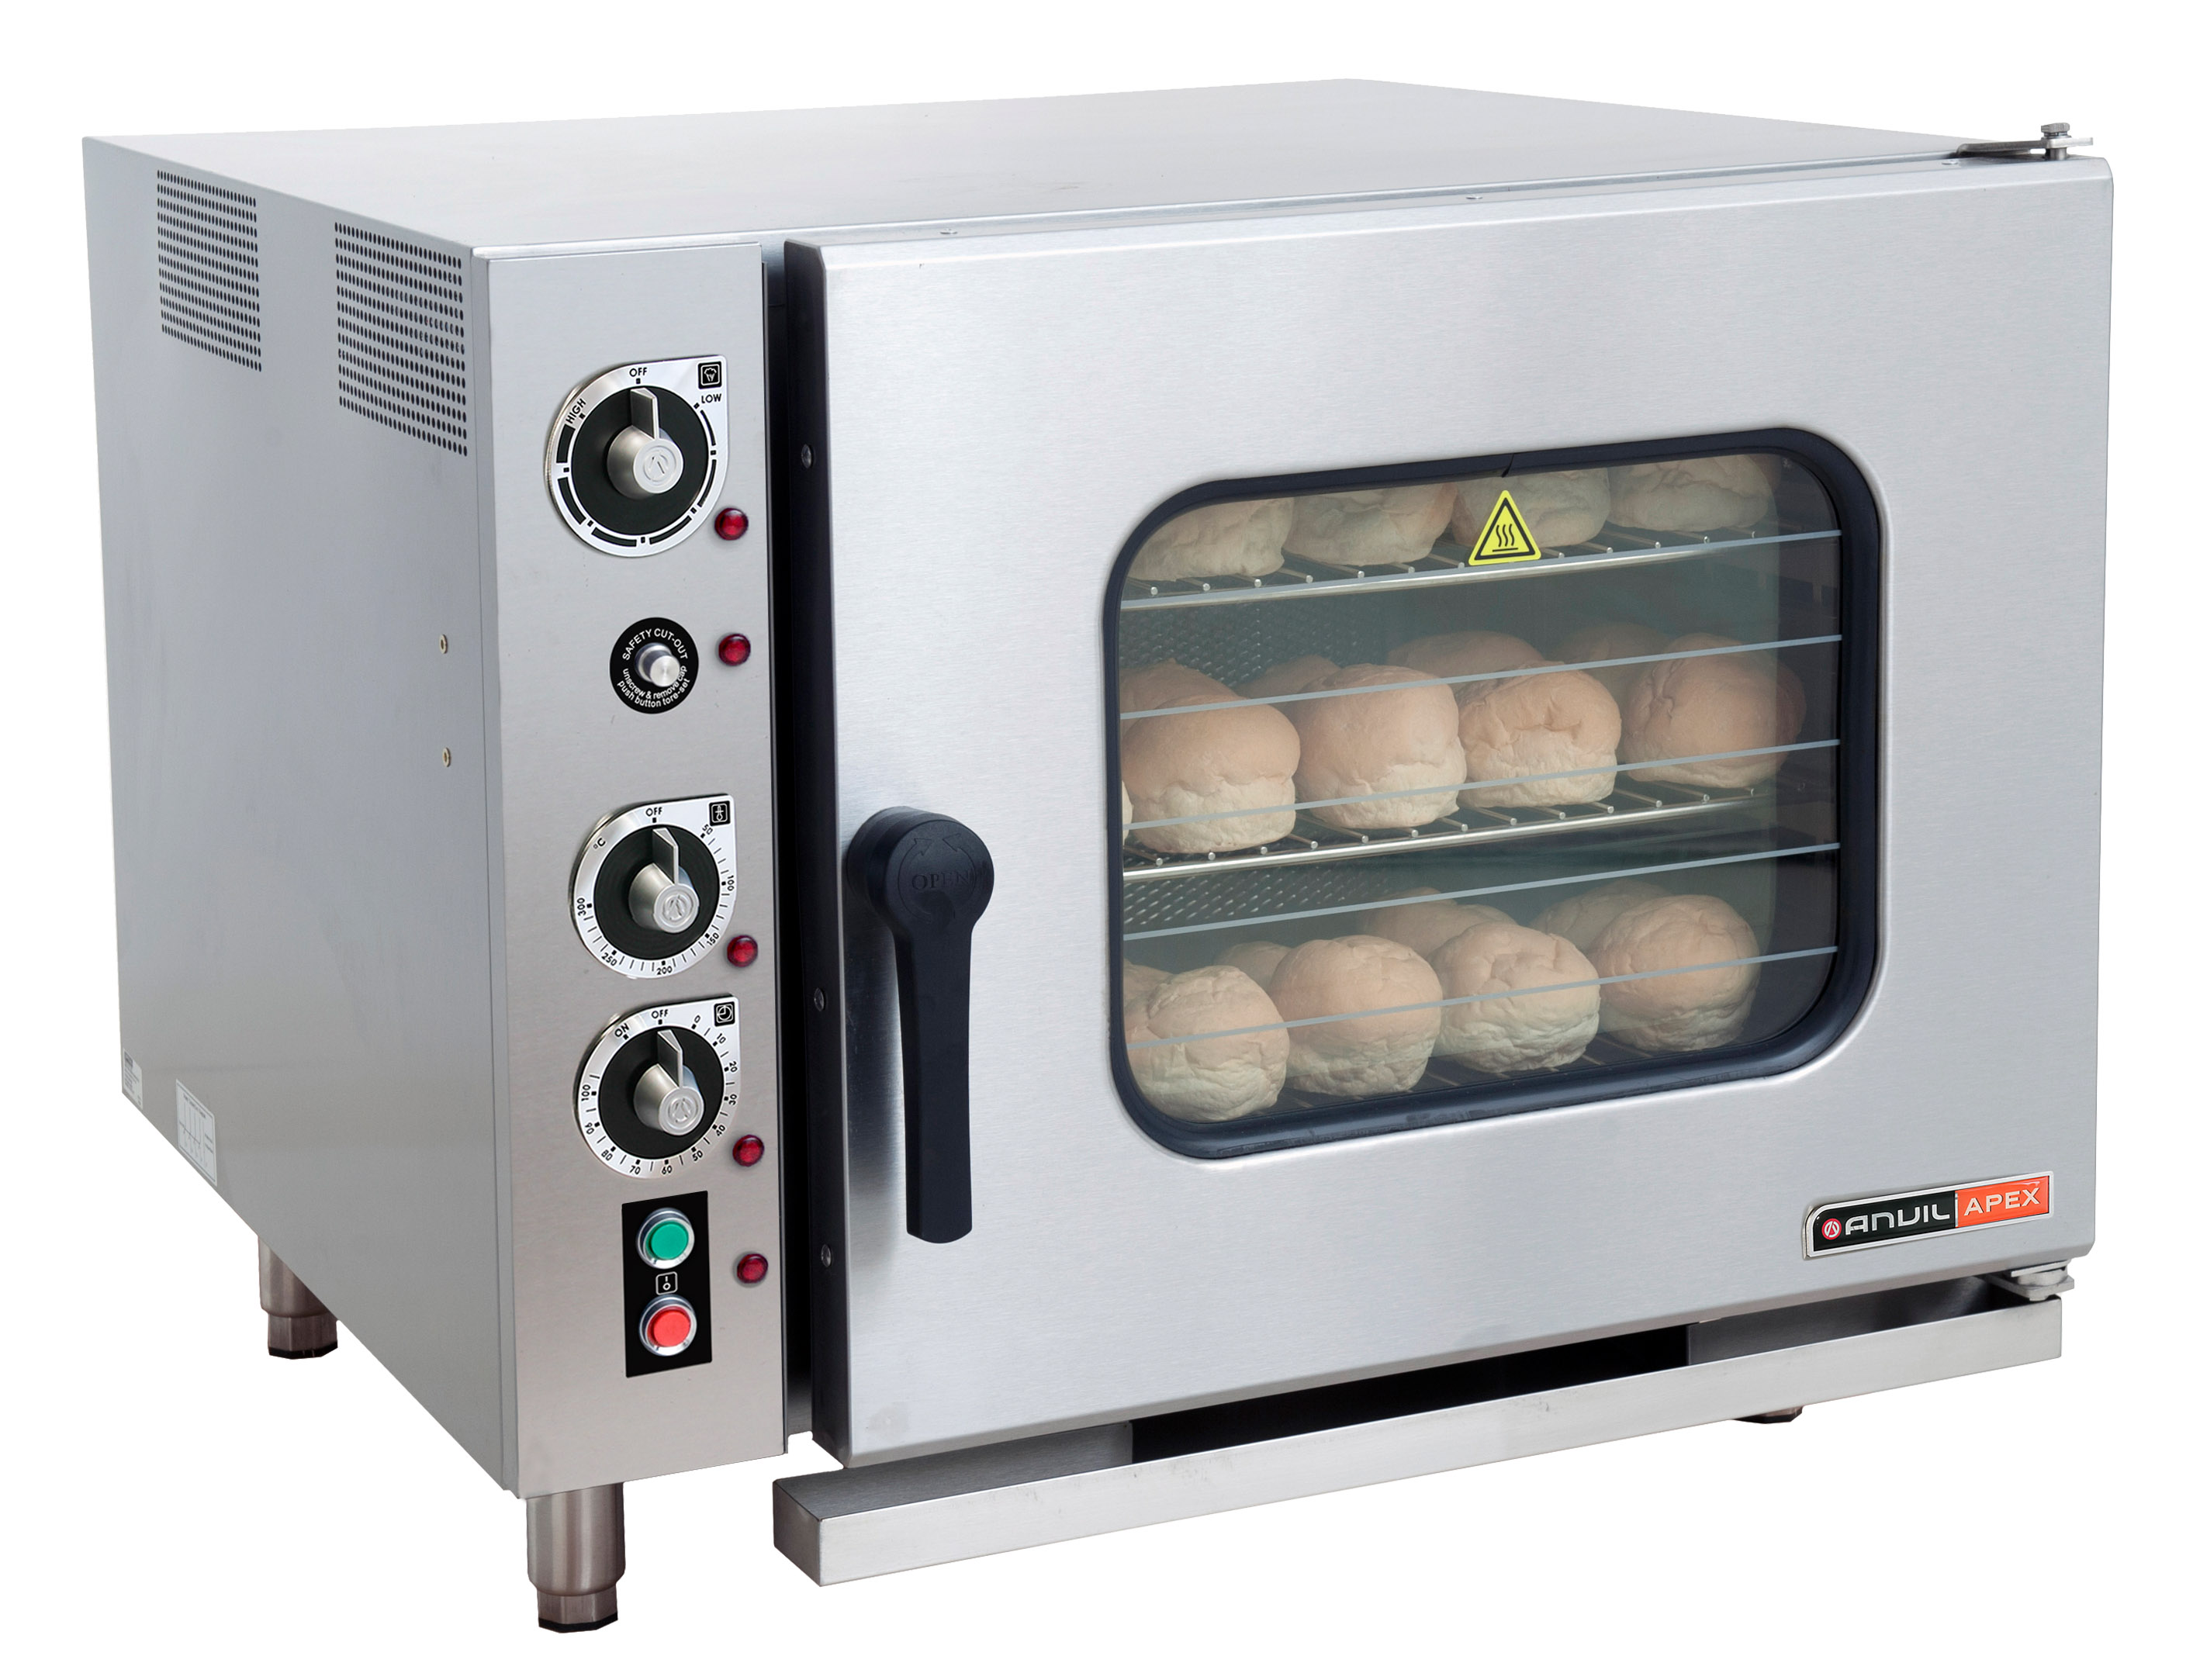 6 Pan Combi Steam Oven- Anvil